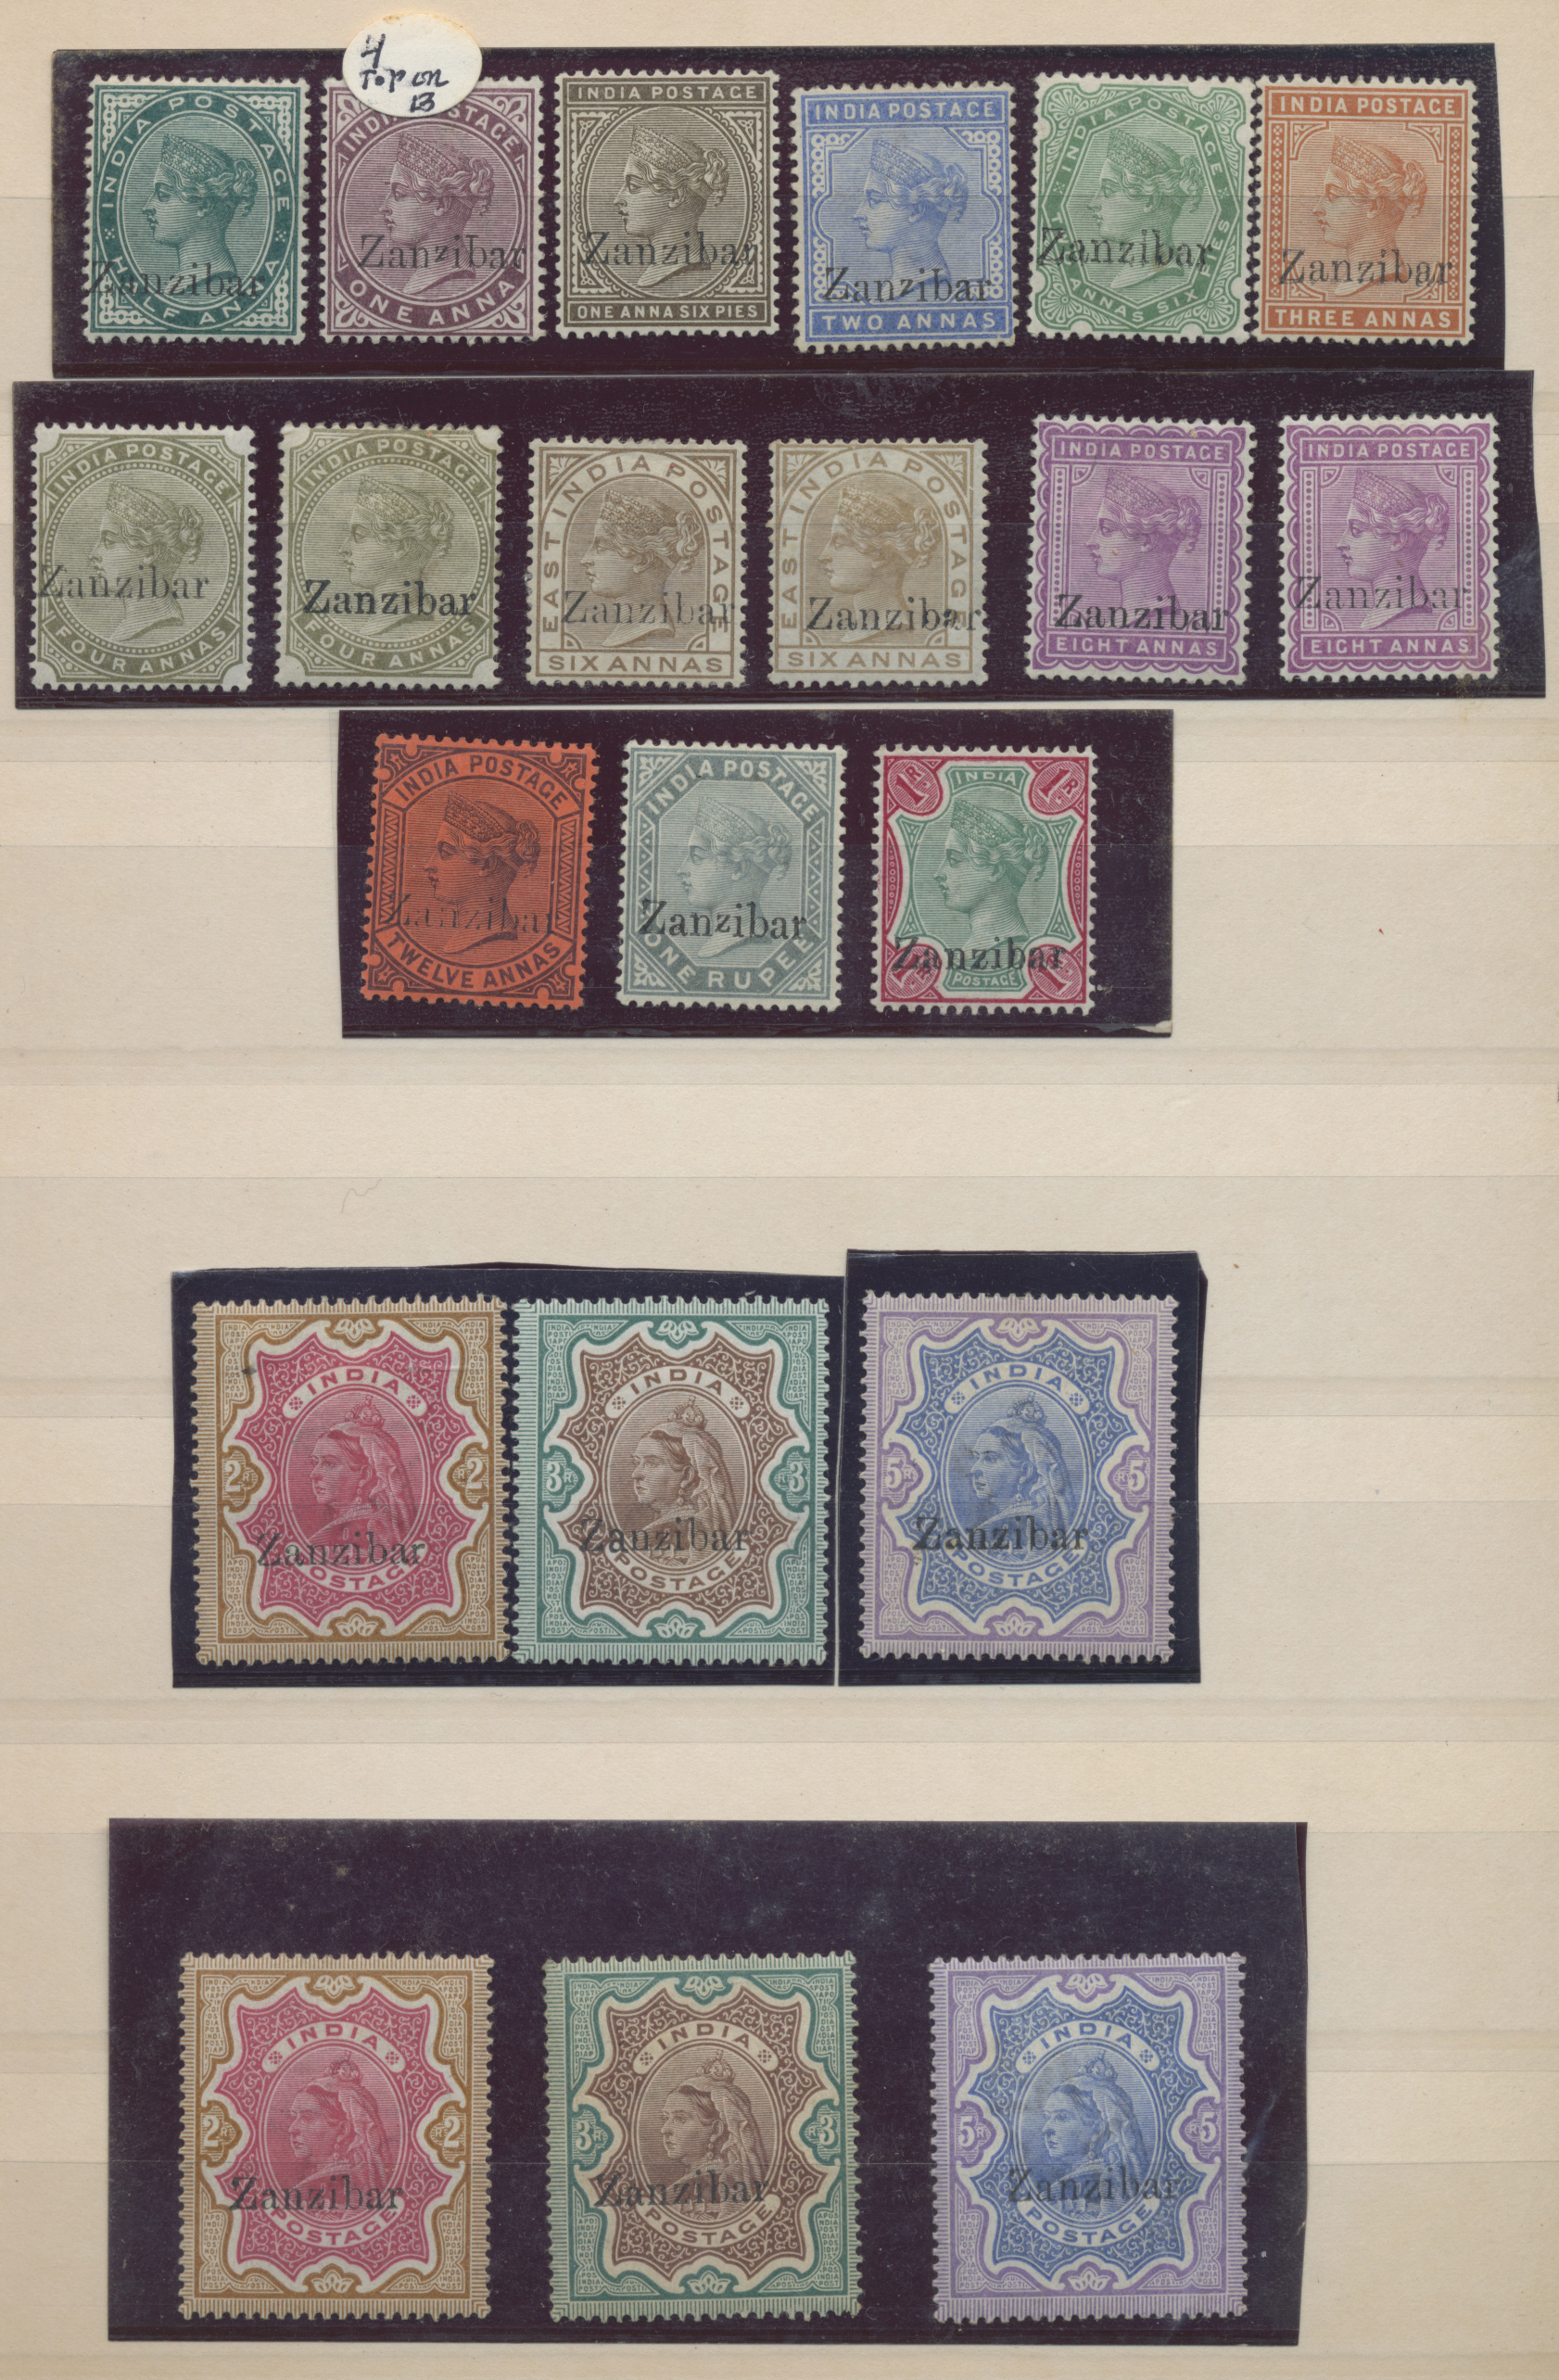 Christoph Gärtner Philatelic Sale - 44 Page 527